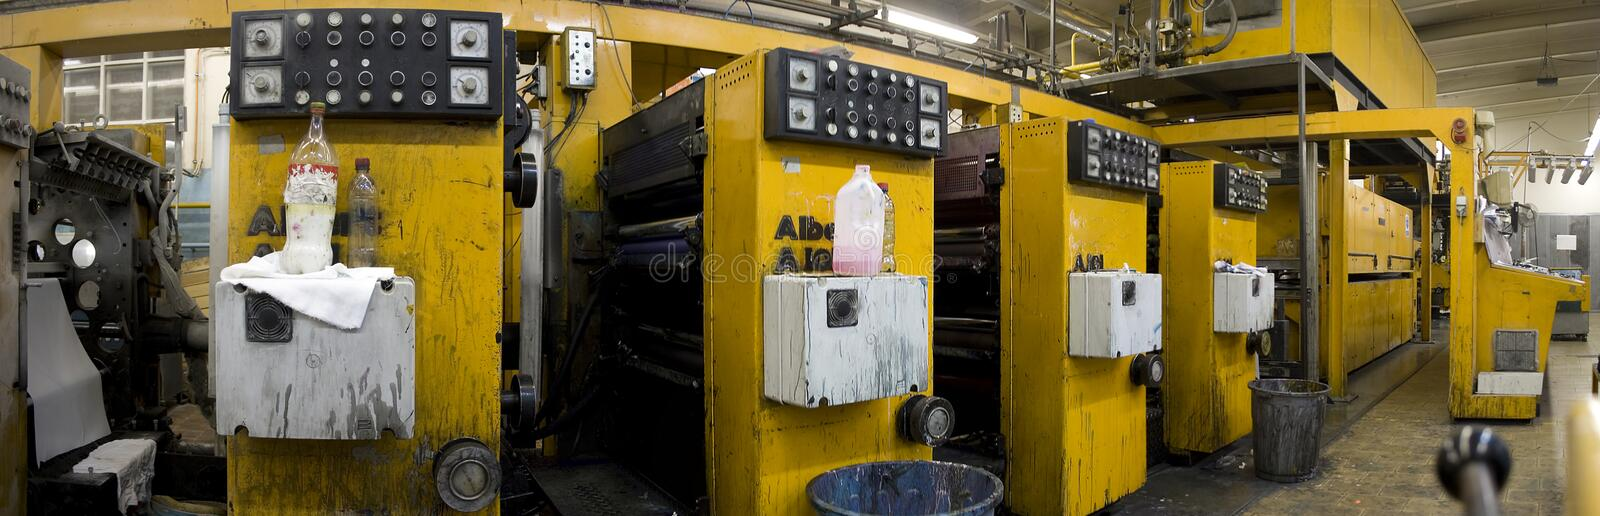 Offset printing machine royalty free stock photos